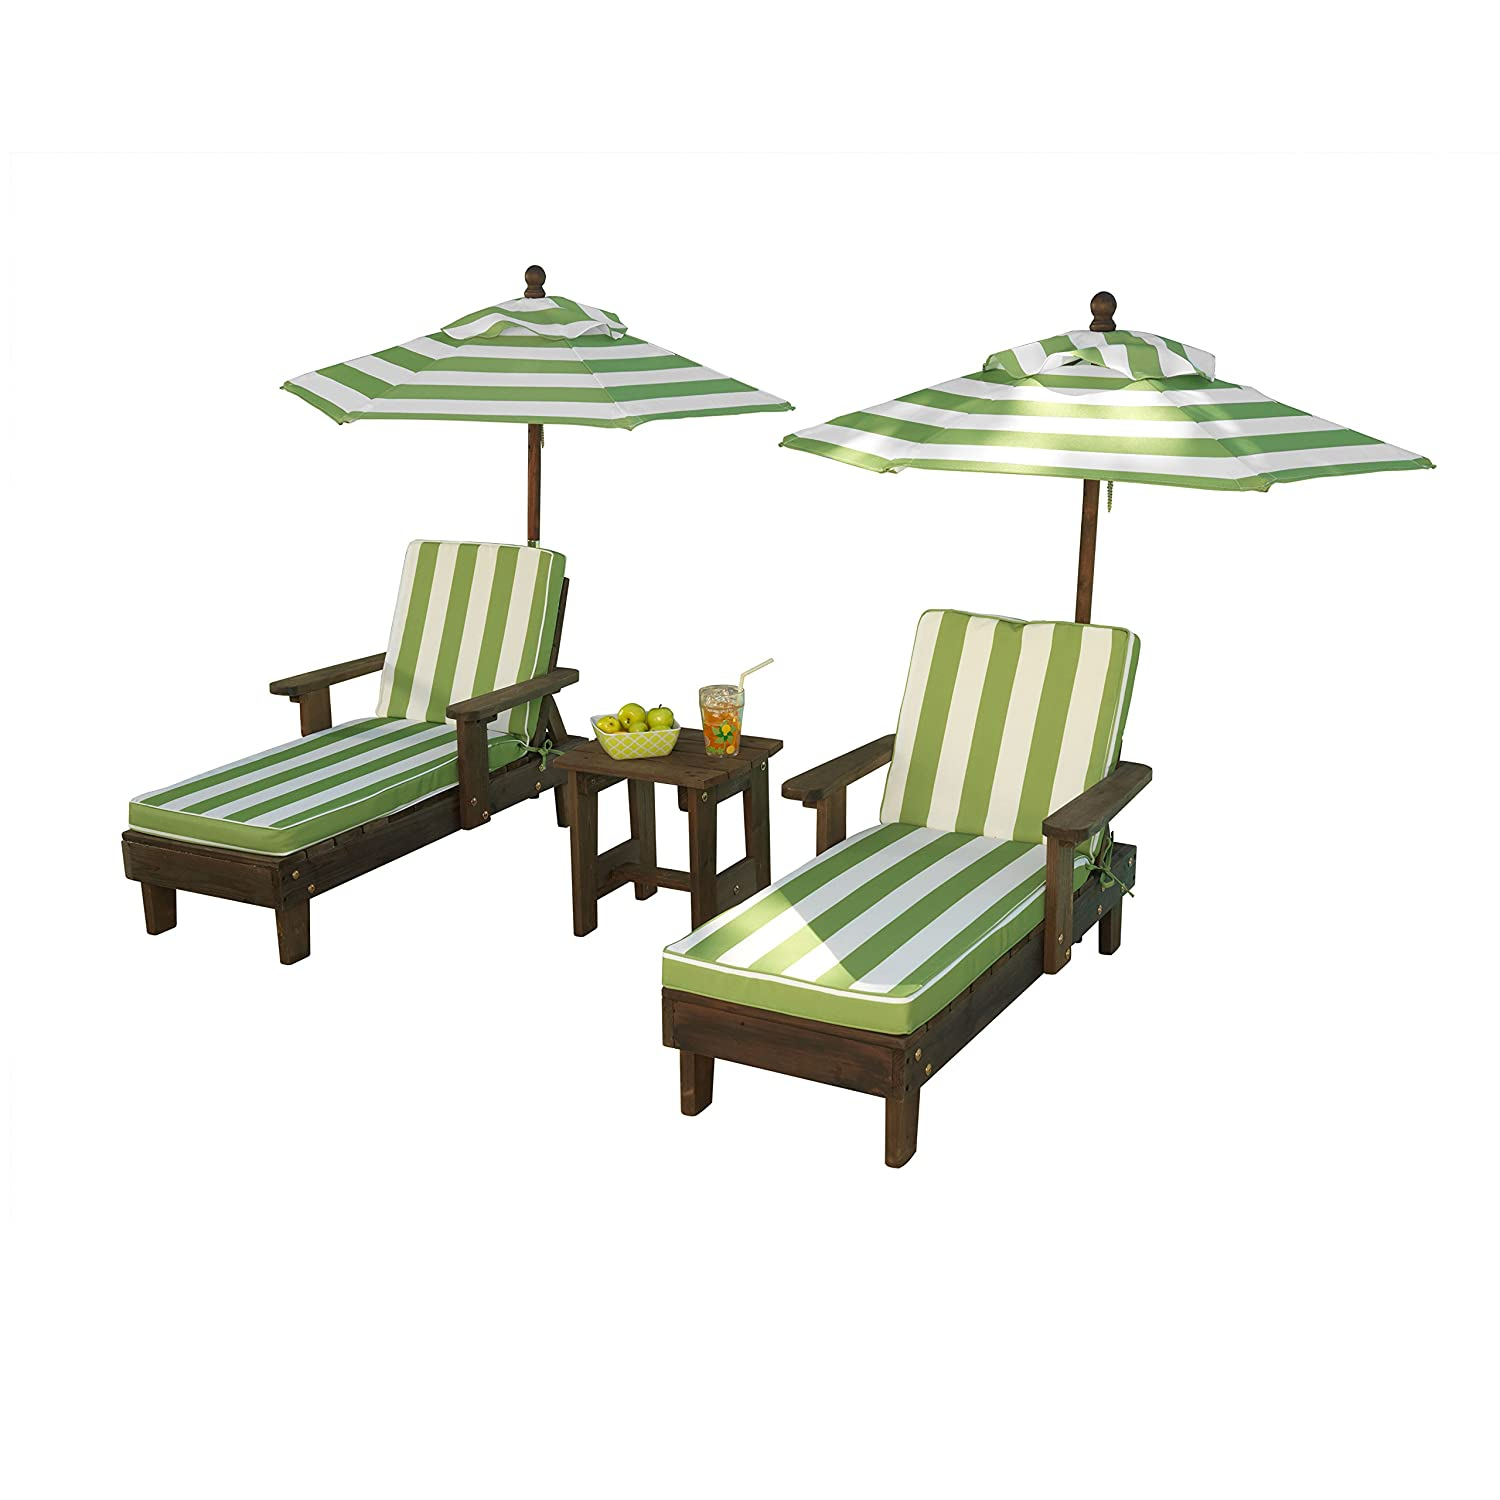 KidKraft Wooden Kona 2 Chaise and Umbrella Set